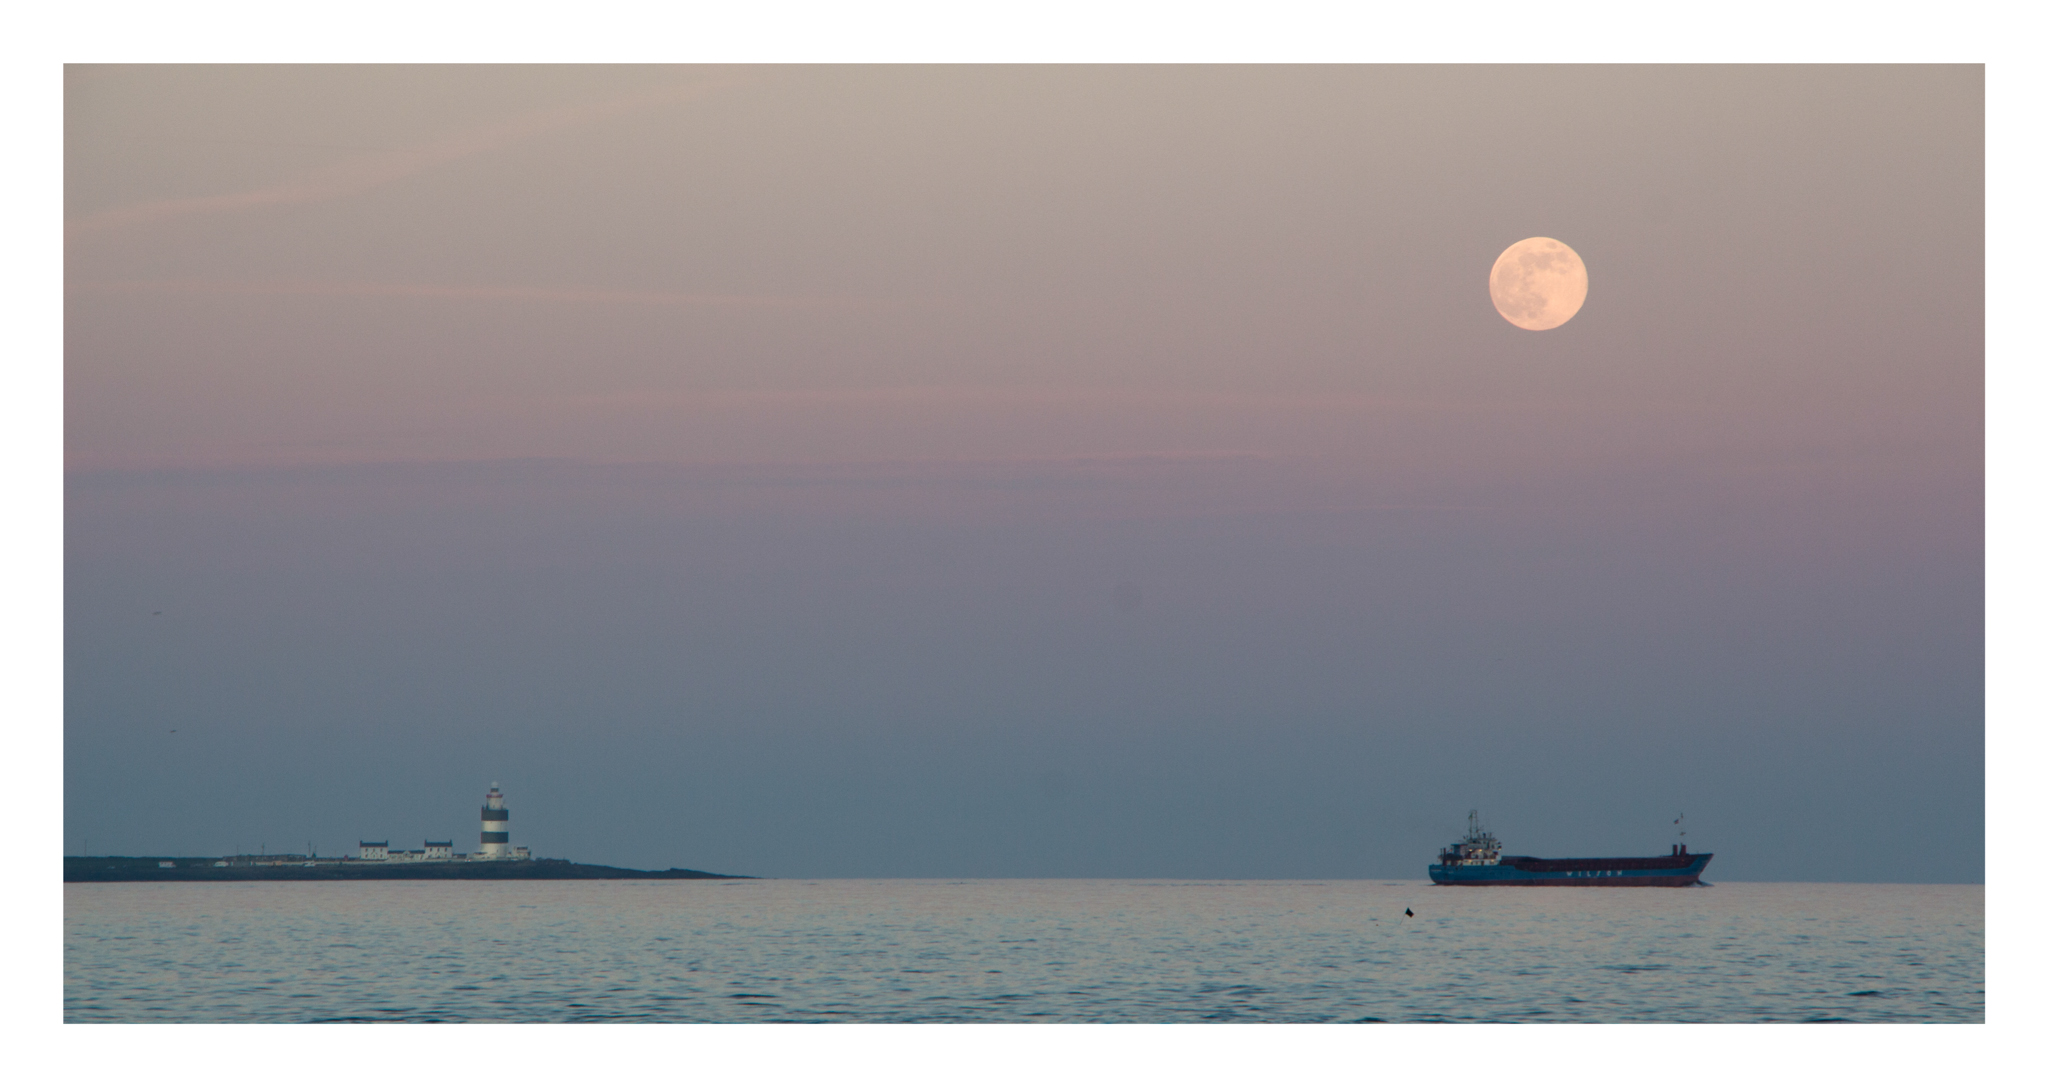 Snap across the water at Hook head light house. I had planned to catch the moon as it rose behind the lighthosue but the hase obsecured it completly